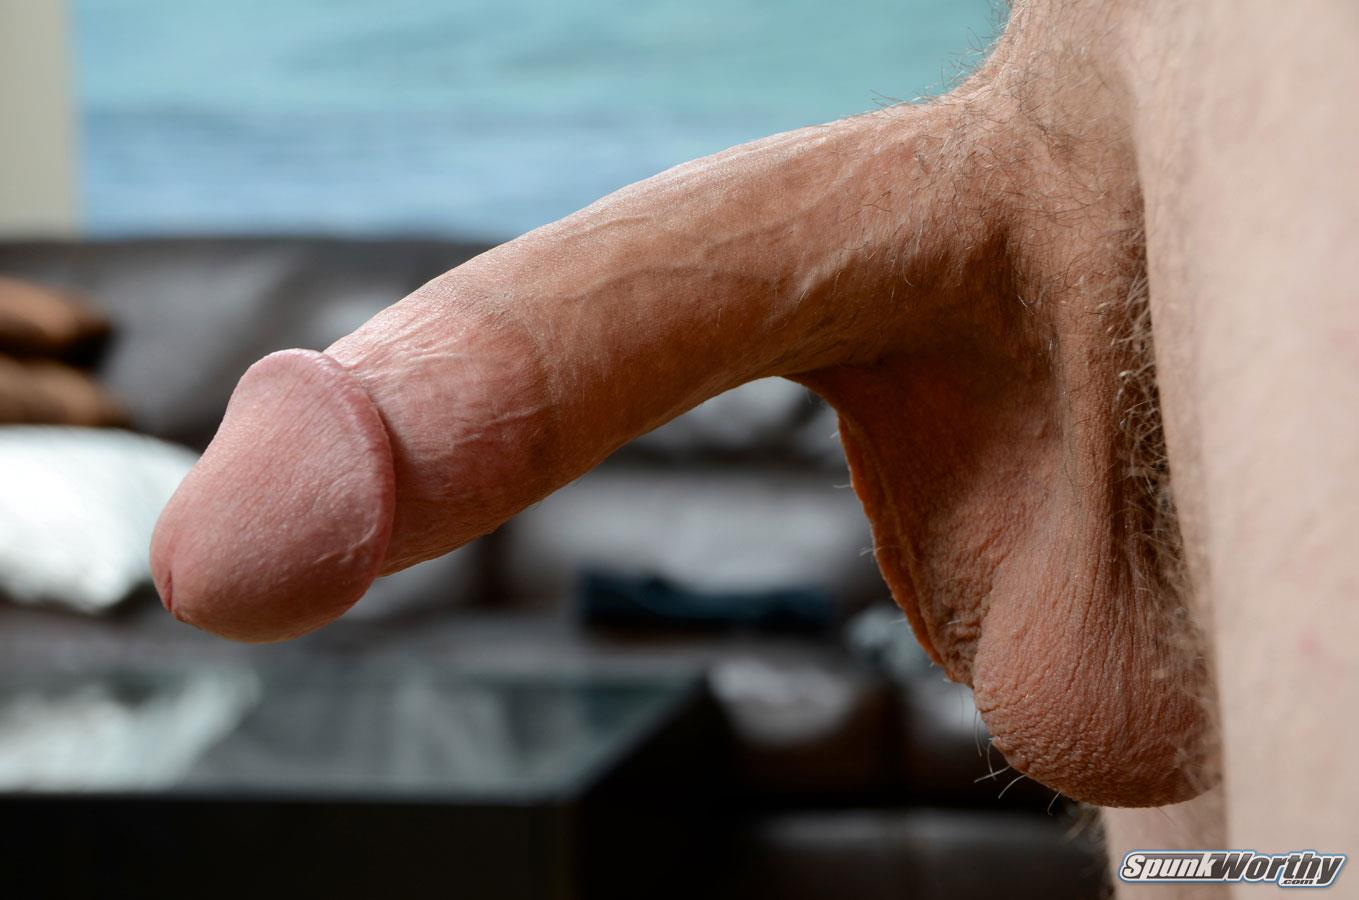 SpunkWorthy-Dane-Tatted-Marine-Masturbating-8-Inch-Cock-Amateur-Gay-Porn-09 Amateur StraightTatted Marine Jerking His Big 9